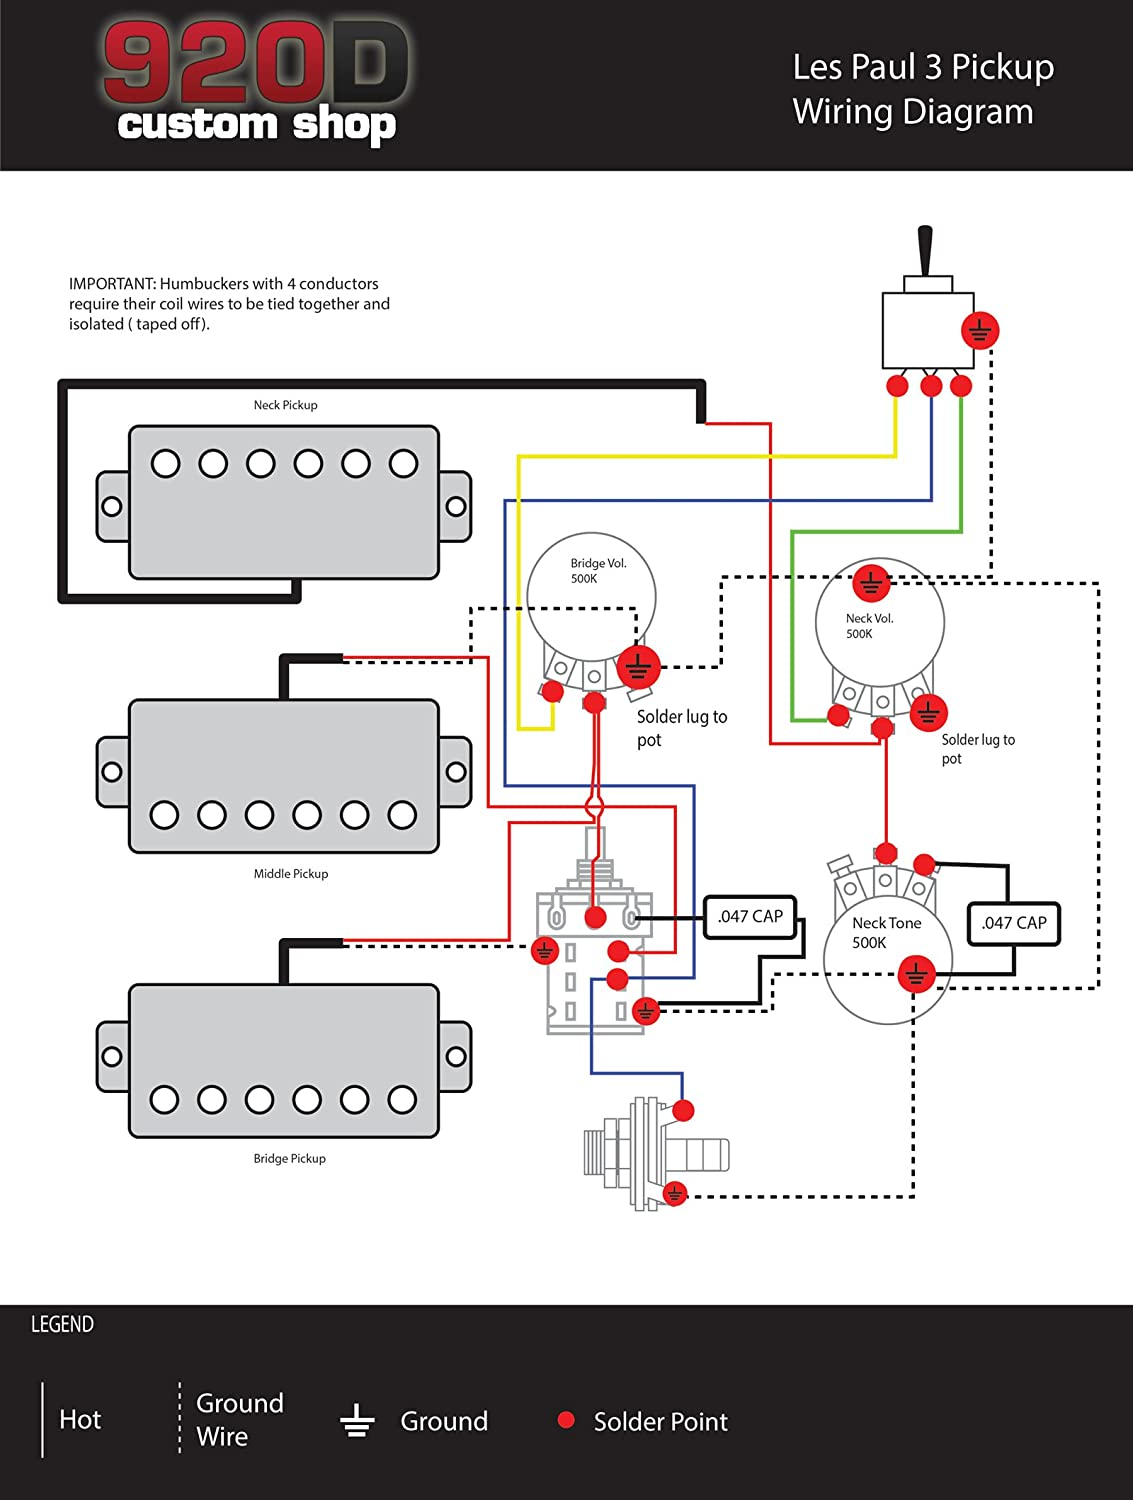 Wiring Diagram For Les Paul : Gibson sg wiring harness diagrams diagram